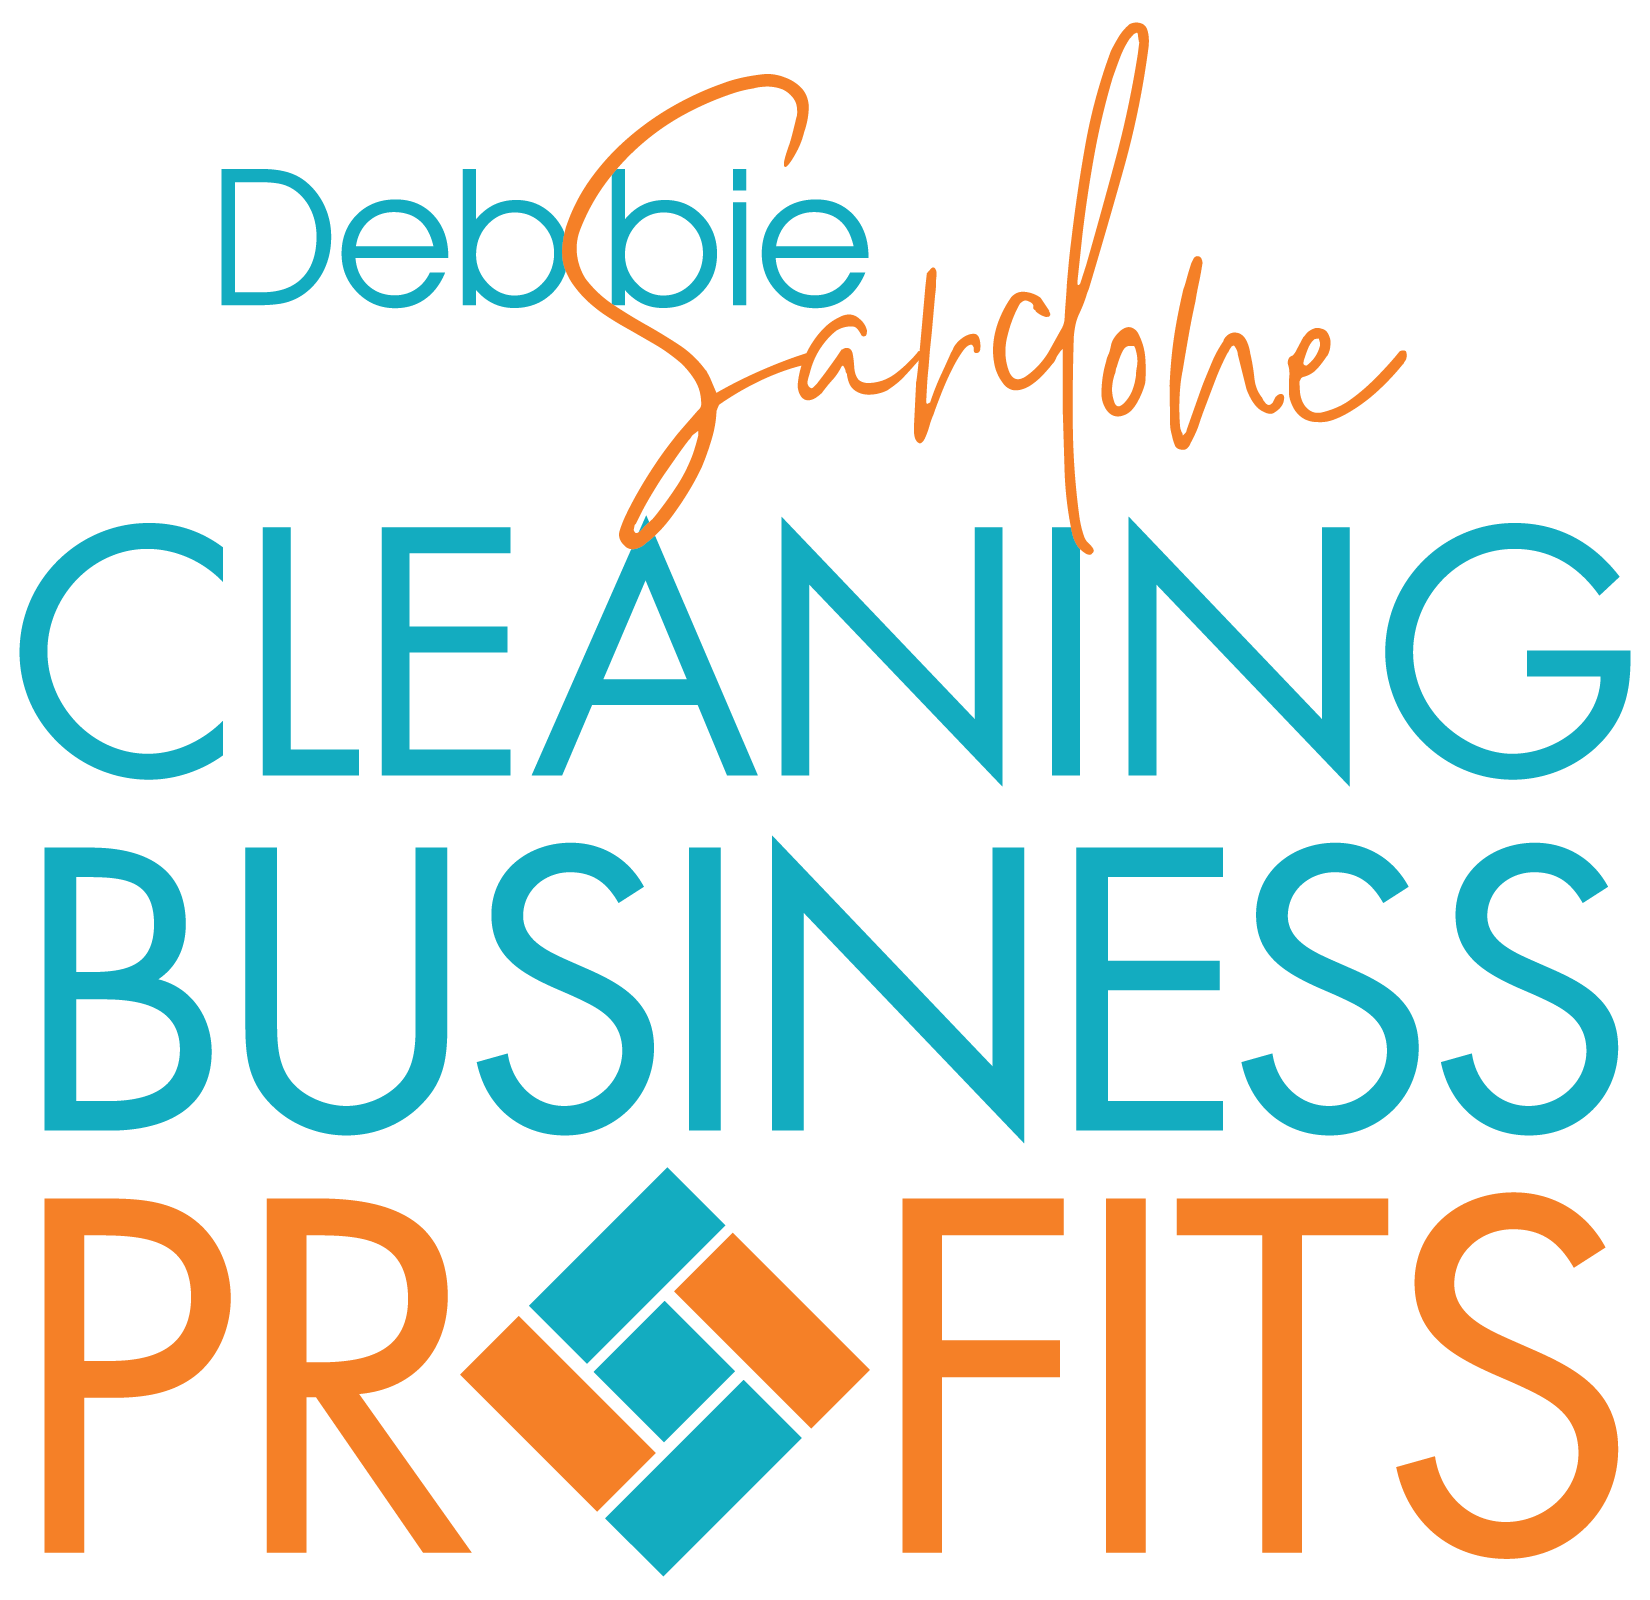 Cleaning Business Profits